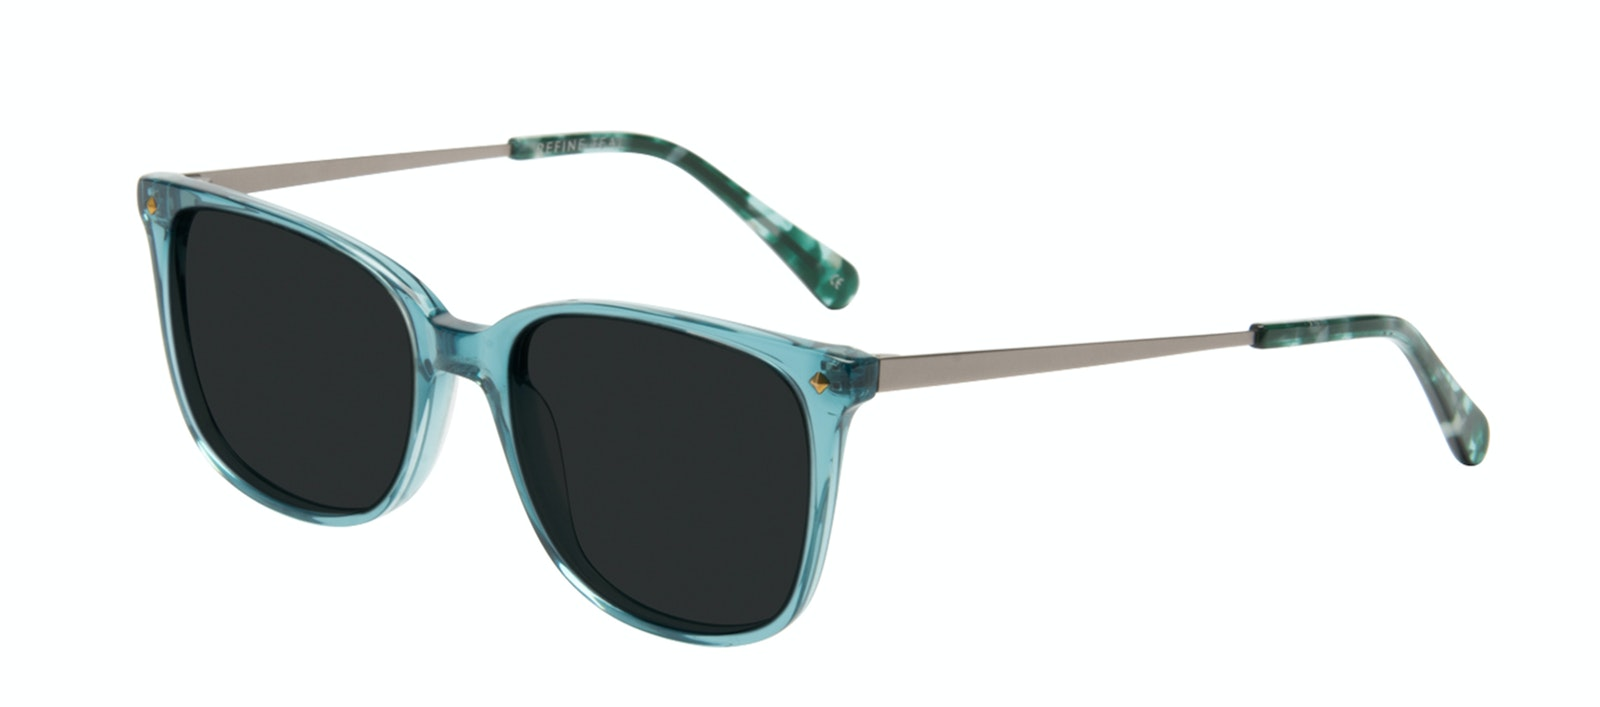 Affordable Fashion Glasses Rectangle Square Sunglasses Women Refine Teal Tilt